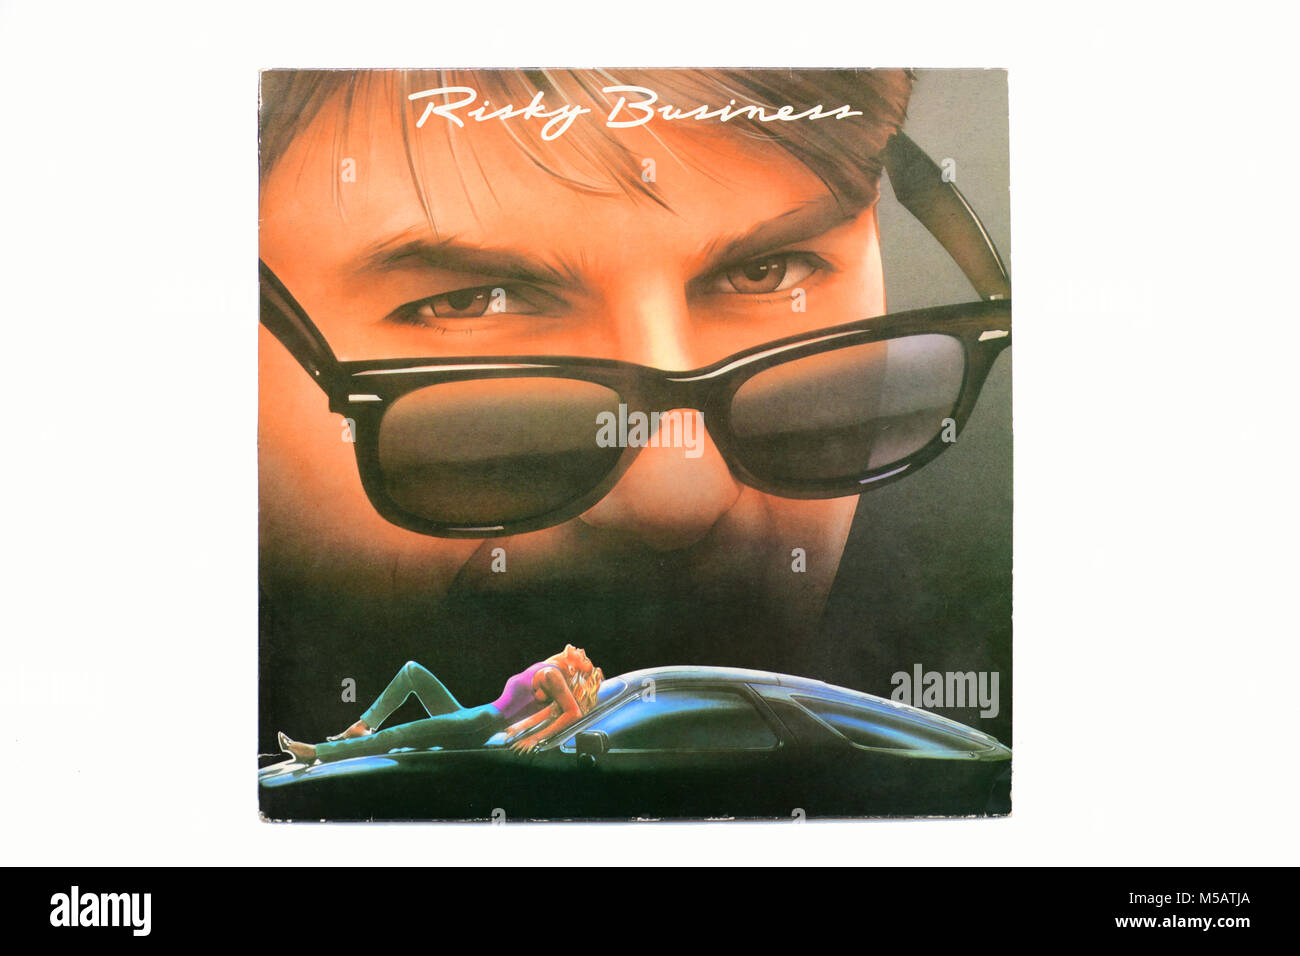 Movie Soundtrack to RISKY BUSINESS with Tom Cruise LP music vinyl album cover art - Stock Image